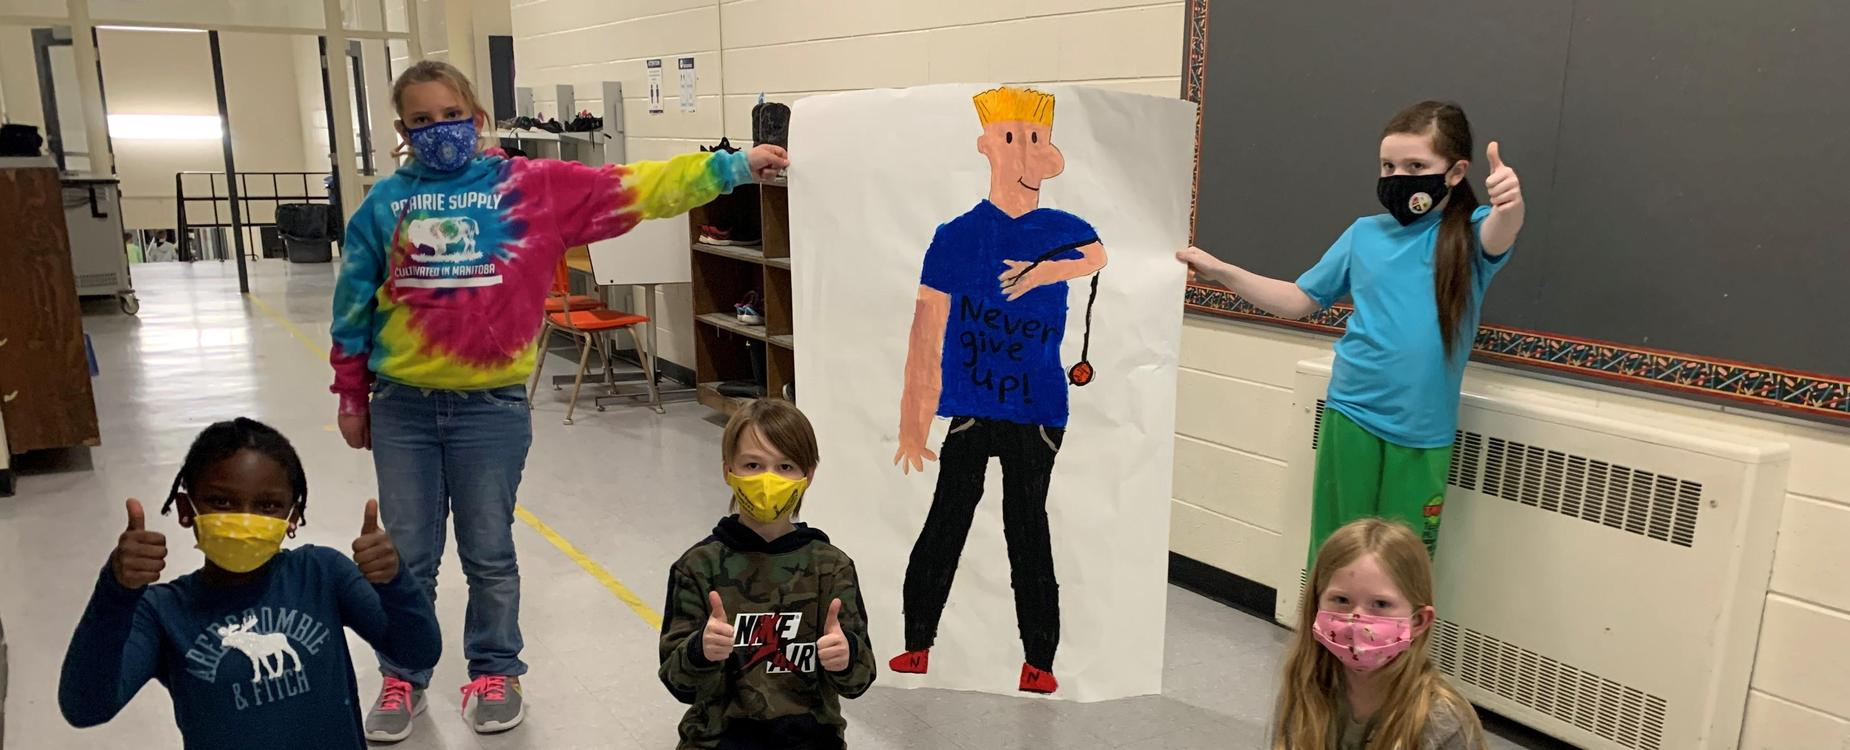 5 students from a Grade 4/5 class, posing in the hallway with 2 students holding a life-sized picture of the NED character.